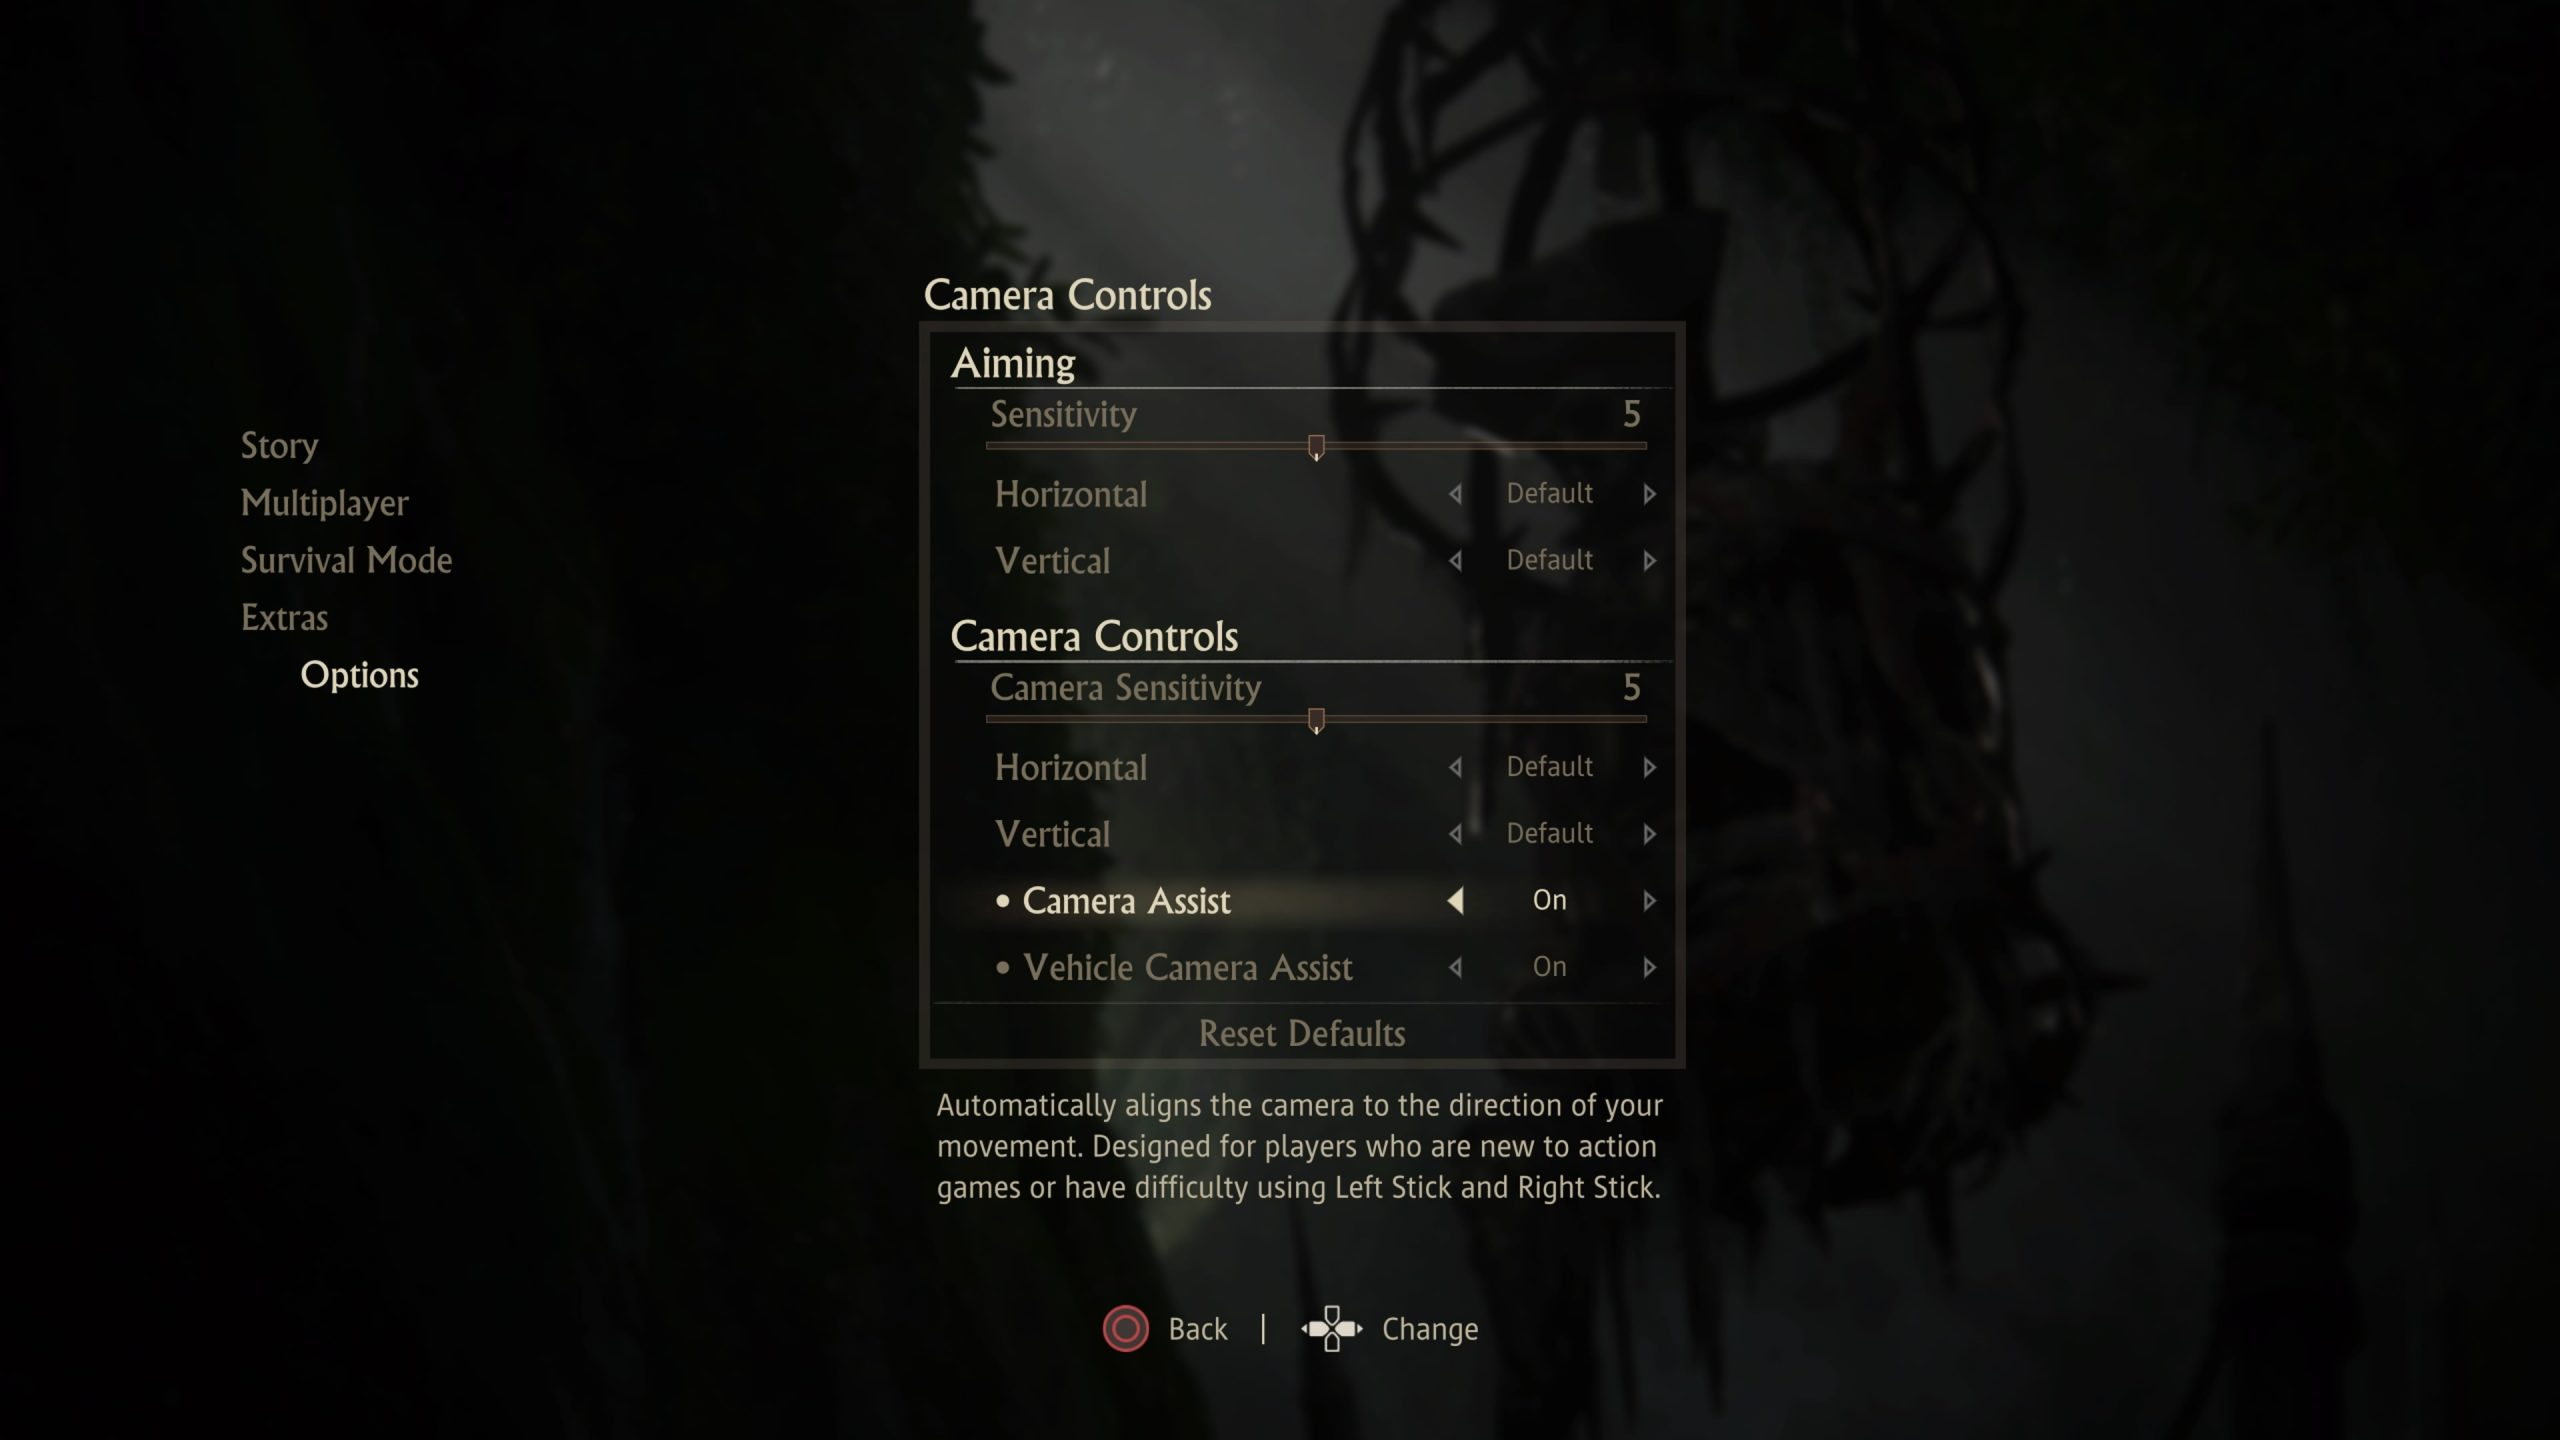 Screenshot of the list of settings found in the Camera Controls sub-menu